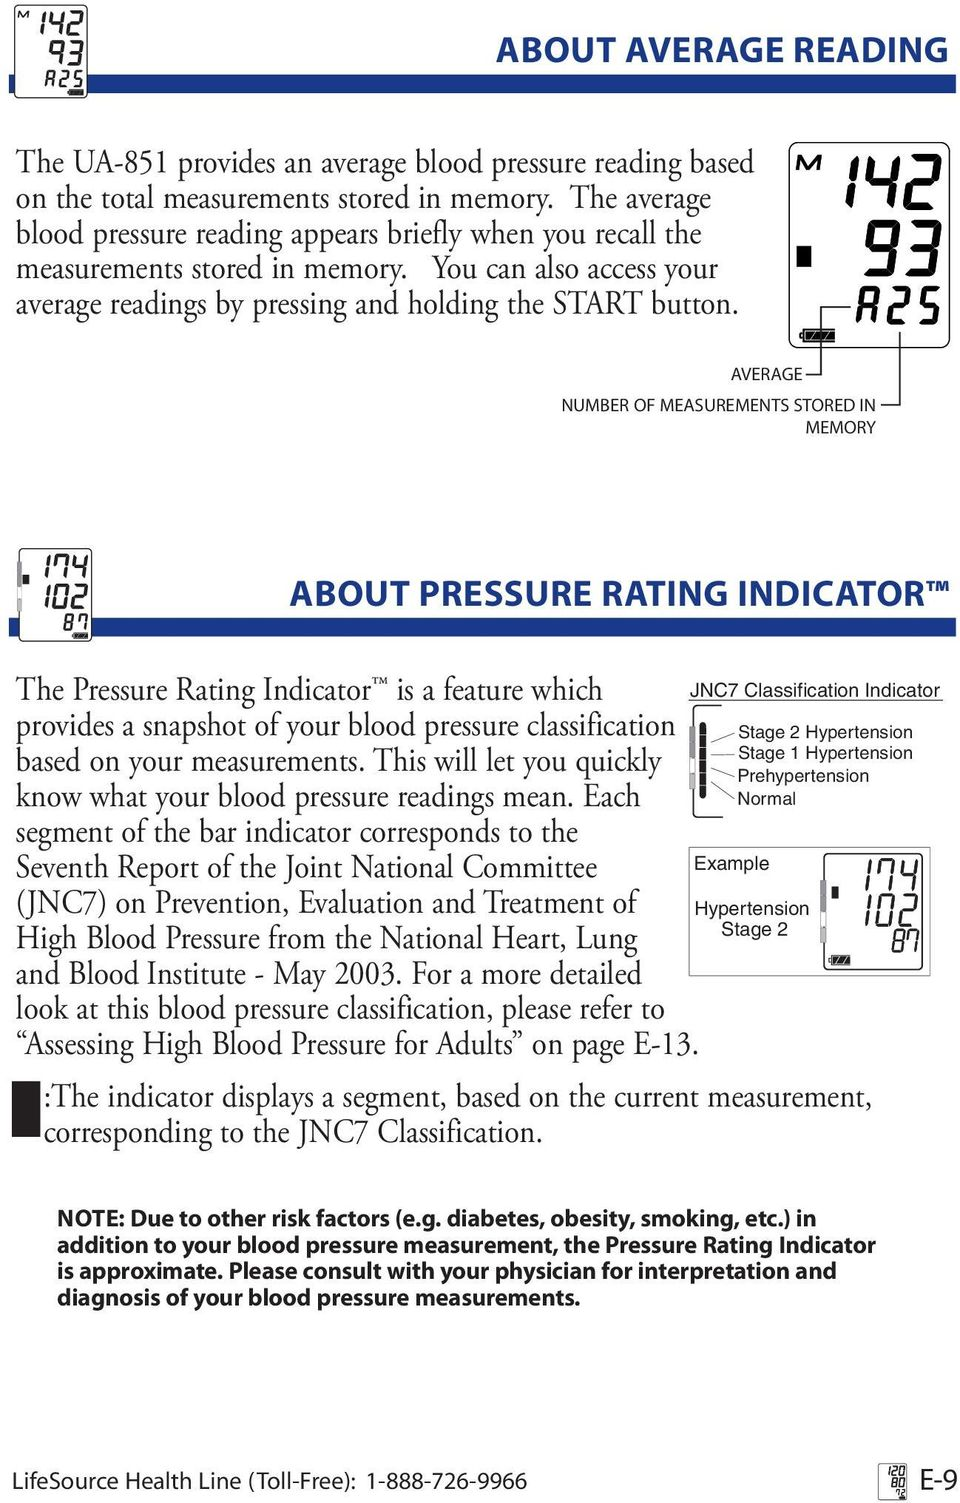 AVERAGE NUMBER OF MEASUREMENTS STORED IN MEMORY ABOUT PRESSURE RATING INDICATOR The Pressure Rating Indicator JNC7 Classification is a feature Indicator which Hypertension Stage 2 provides a snapshot